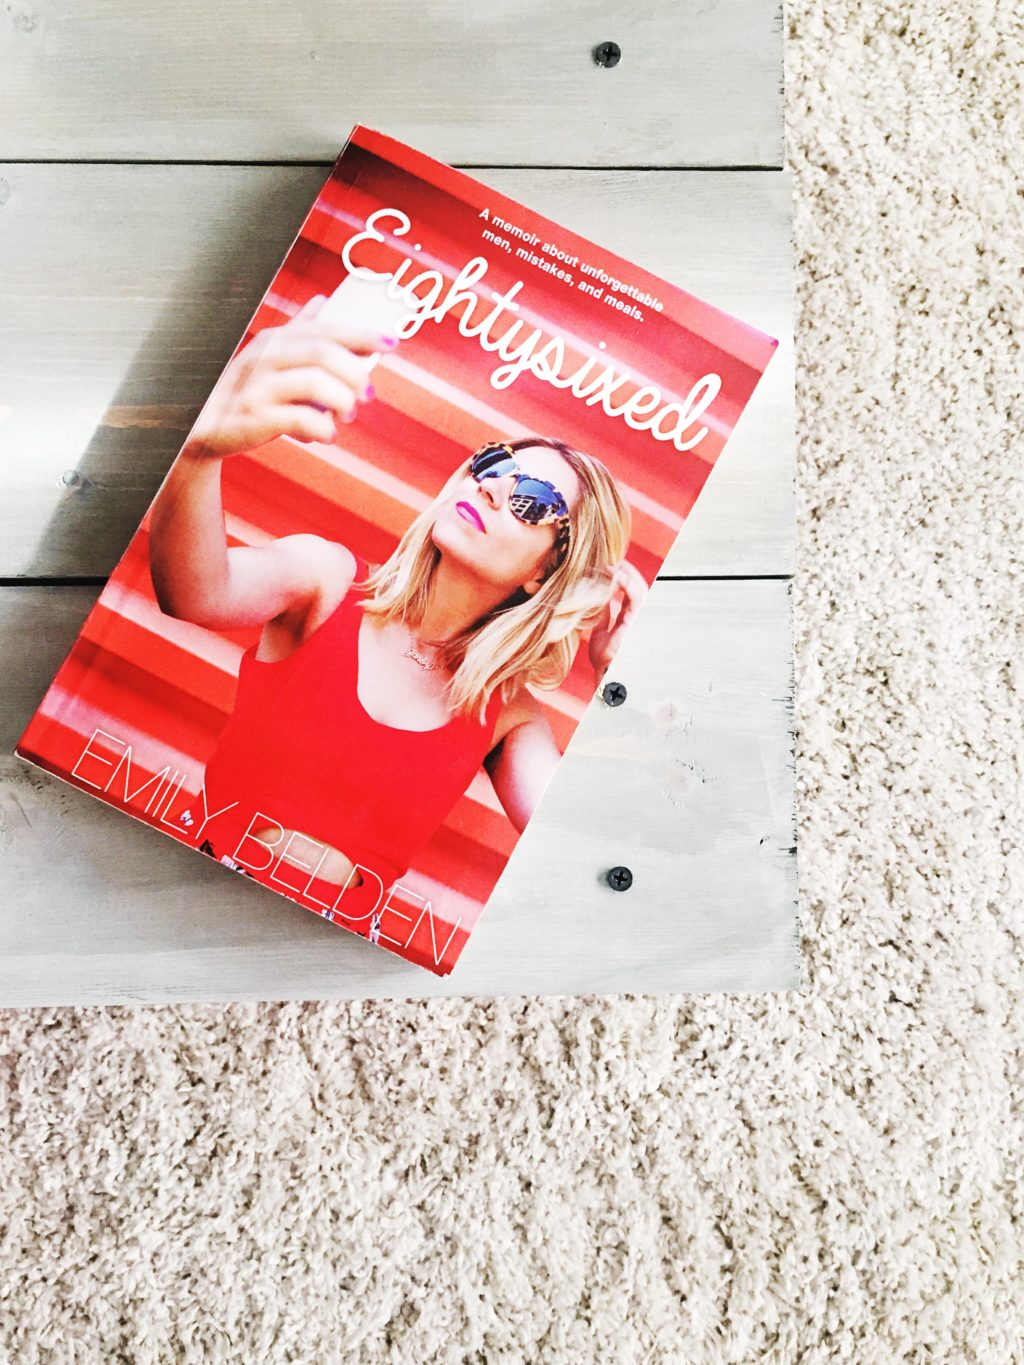 Book Club: Eighty-sixed || Town Lifestyle + Design || Check out my book review on Emily Belden's memoir about unforgettable men, mistakes, and meals - the perfect girls night read